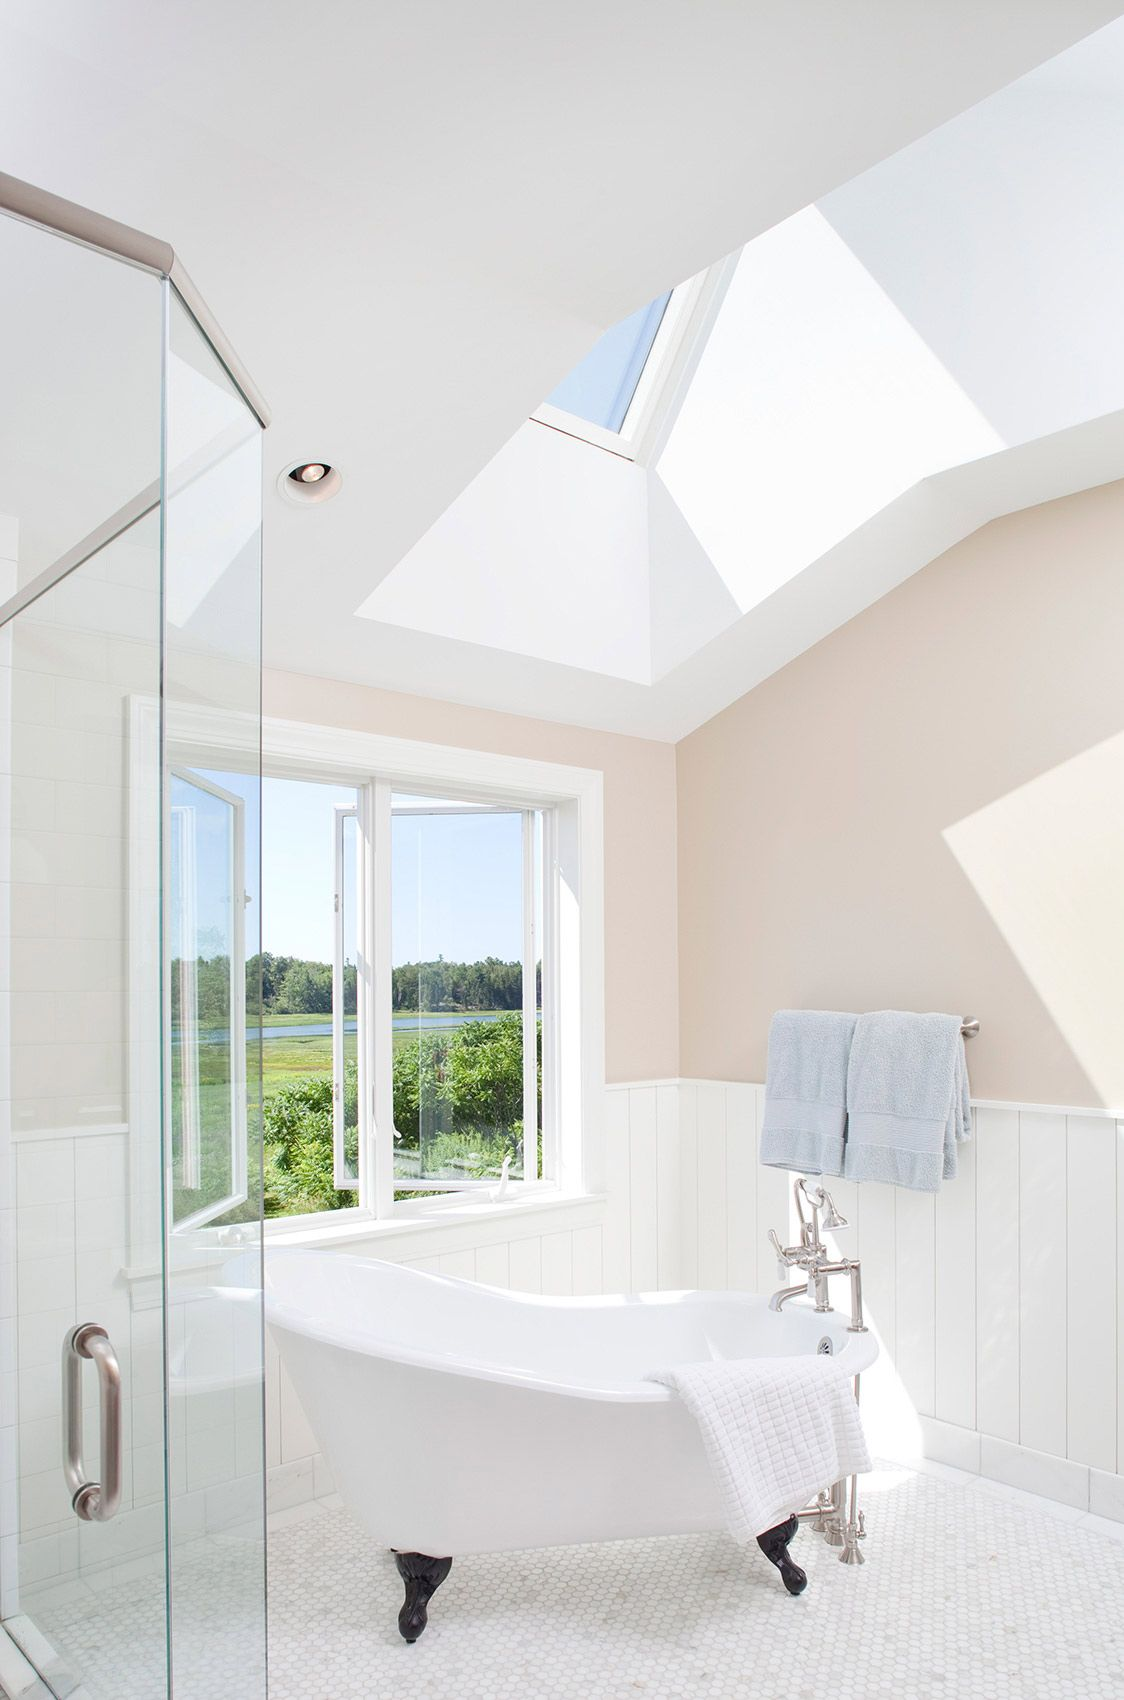 Inn-Interior-photograph-of-a-bathroom-tub.jpg